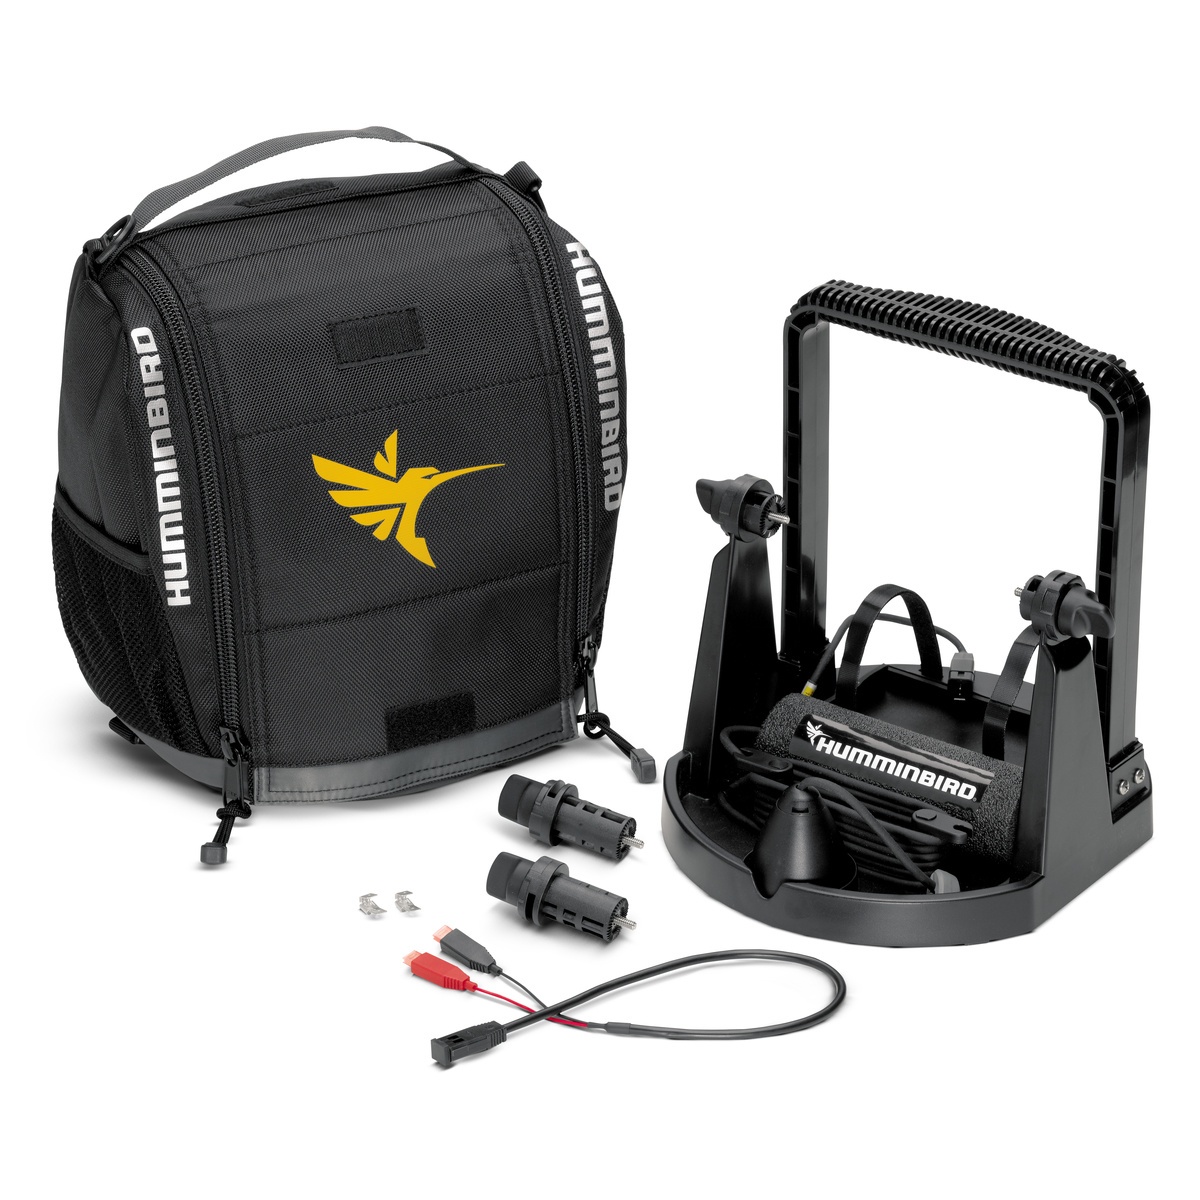 Humminbird Ice PTC CHIRP H57 FB- Portable Ice Kit w/ CHIRP Ice Transducer for HELIX 5/7